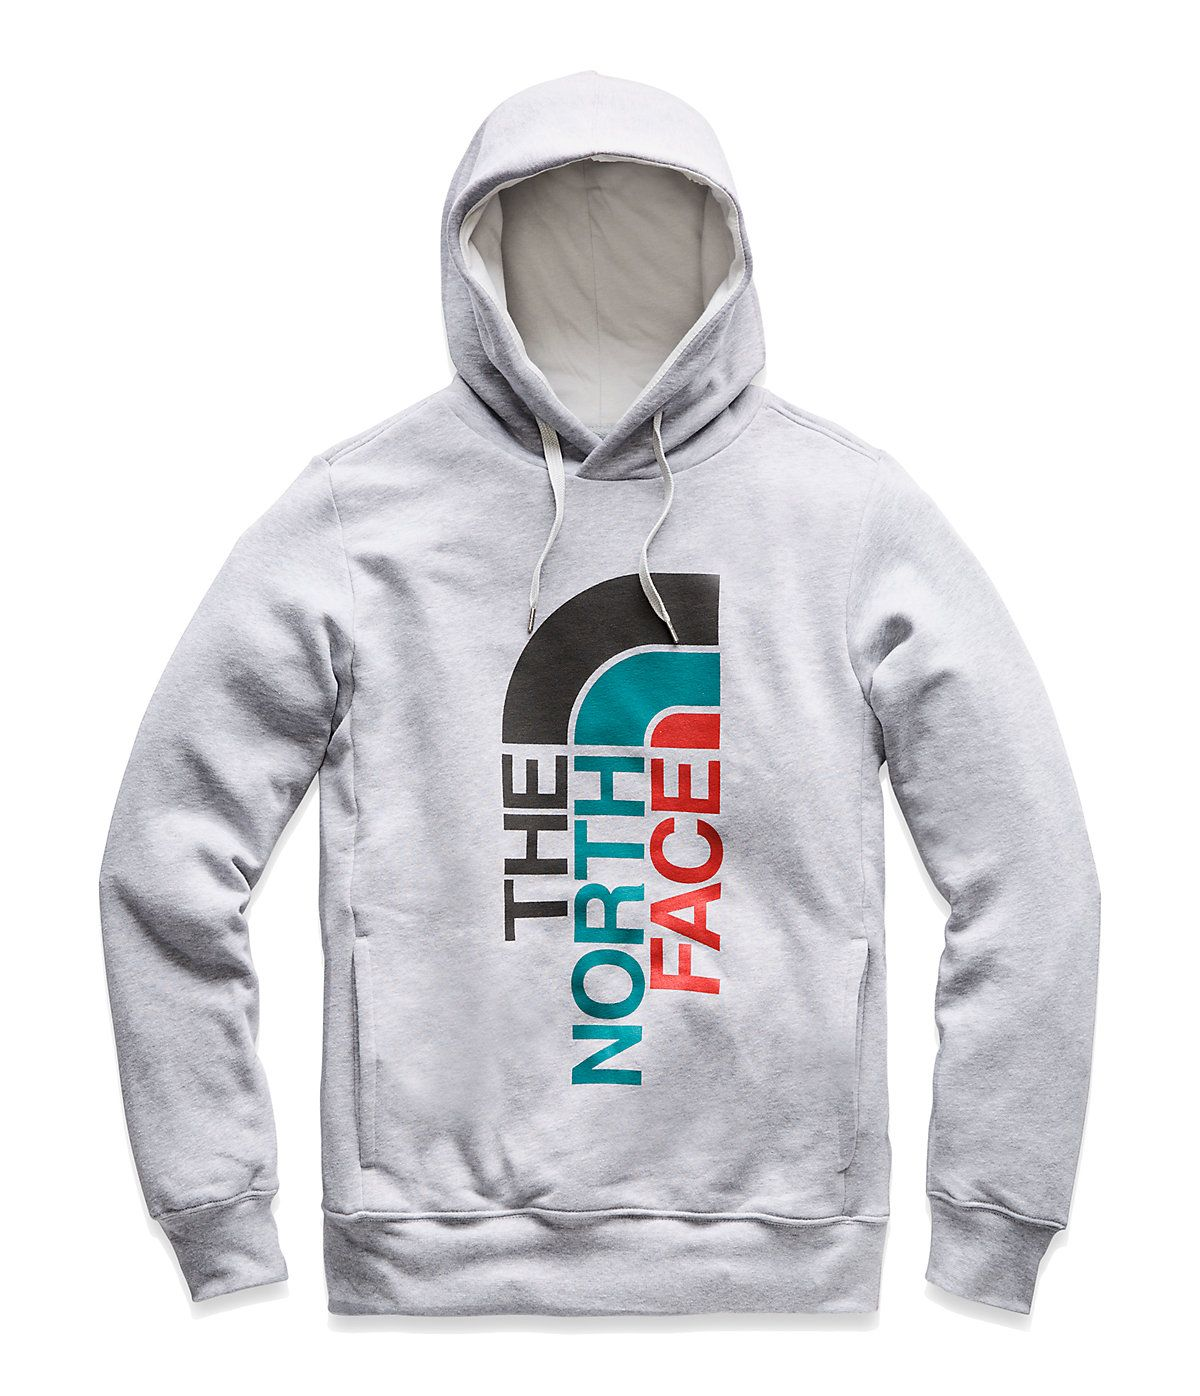 8b5b4496e The North Face Men's Trivert Pullover Hoodie | Products in 2019 ...